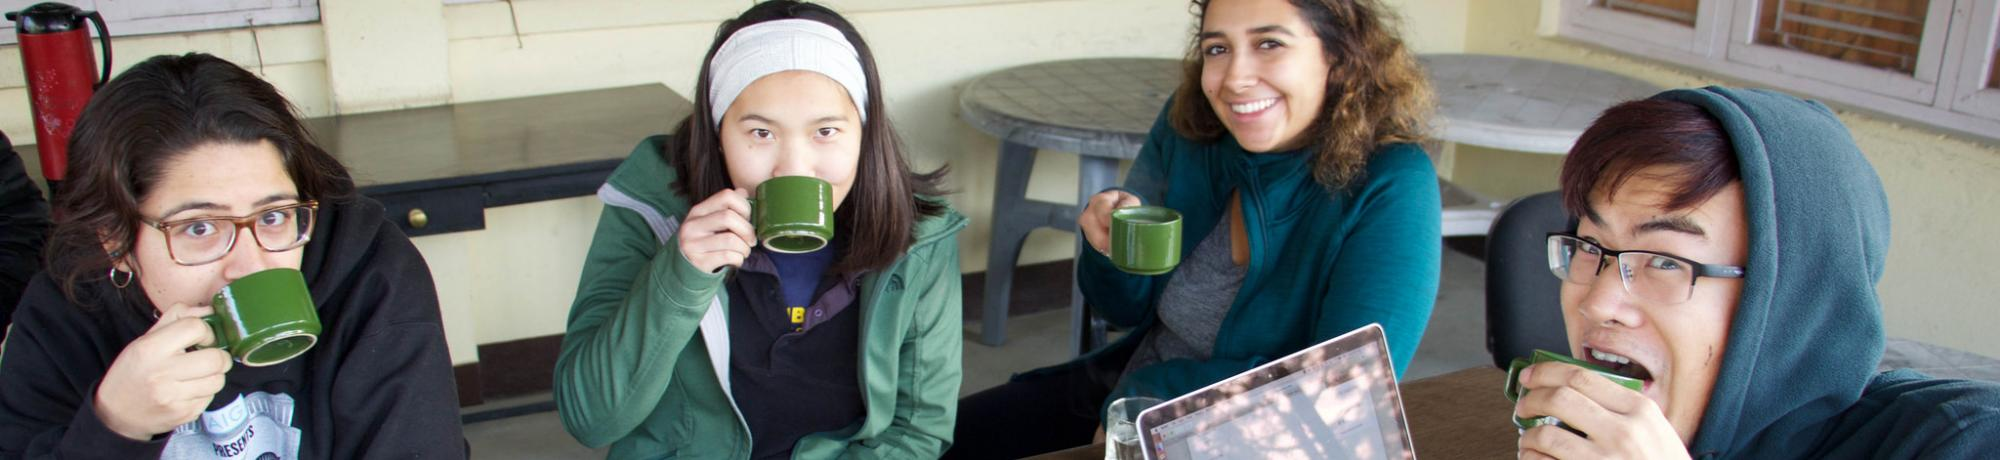 Students sipping on coffee together